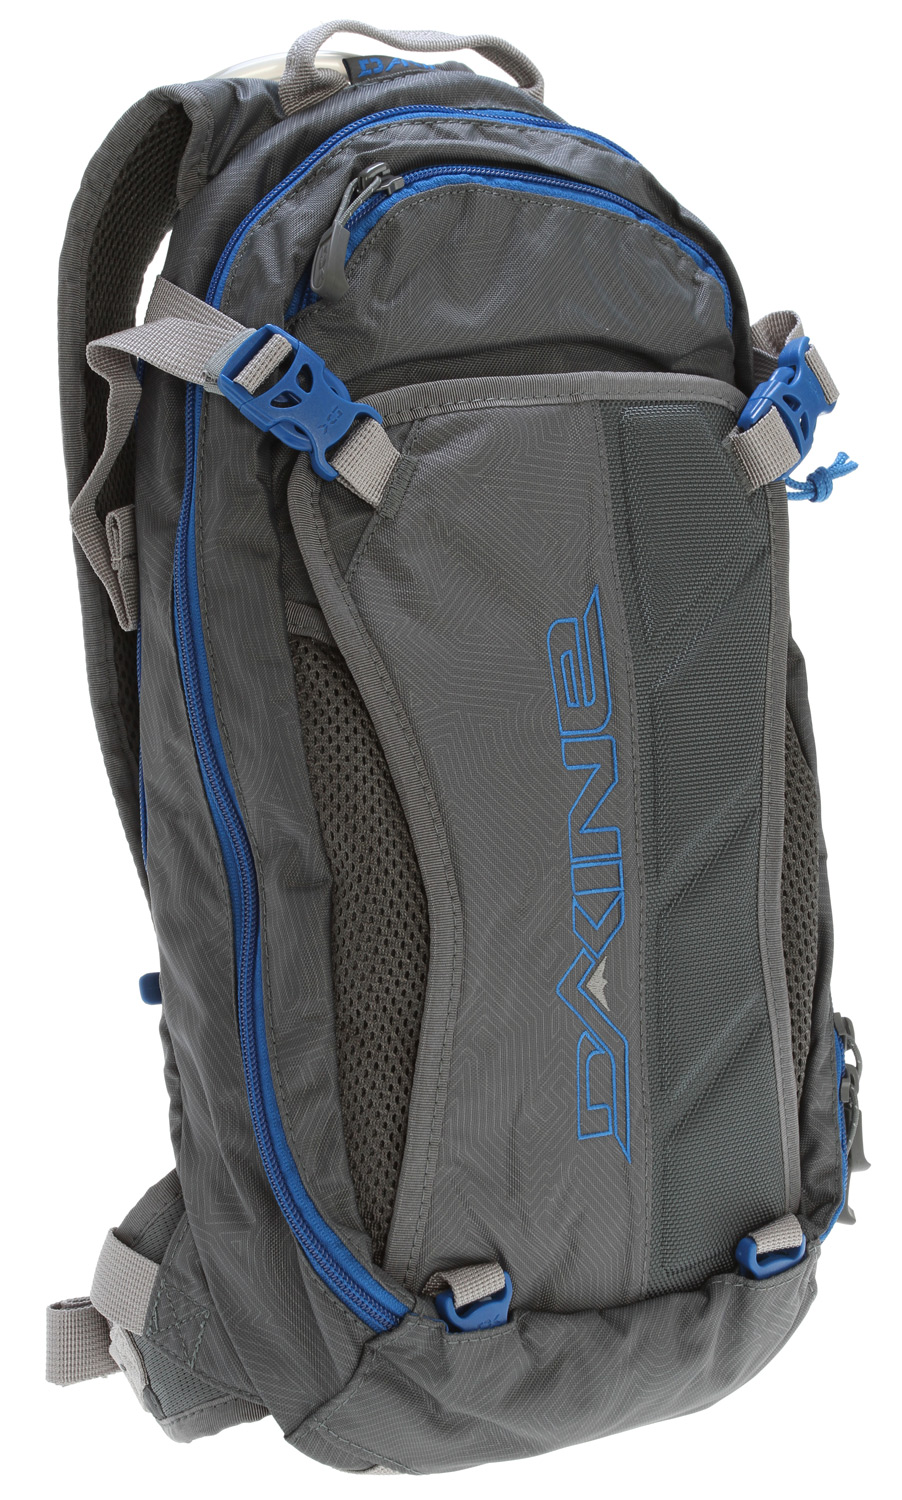 "Surf Key Features of the Dakine Drafter Hydrator Pack 12L: 100oz / 3L reservoir with Quick Disconnect hose Molded back panel with Air Channel Ventilation Full face or XC helmet carry Armor carry straps Padded MP3 pocket Internal organizer pockets Fleece sunglass pocket Tube/pump sleeves Removable waist belt Volume: 700 cu. in. [ 12L ] Size: 18 x 7.5 x 5"" [ 46 x 19 x 13cm ] Weight: 1.4 lbs [ .6 kg ] Materials: 630D Nylon, 1260D Ballistic Nylon - $59.95"